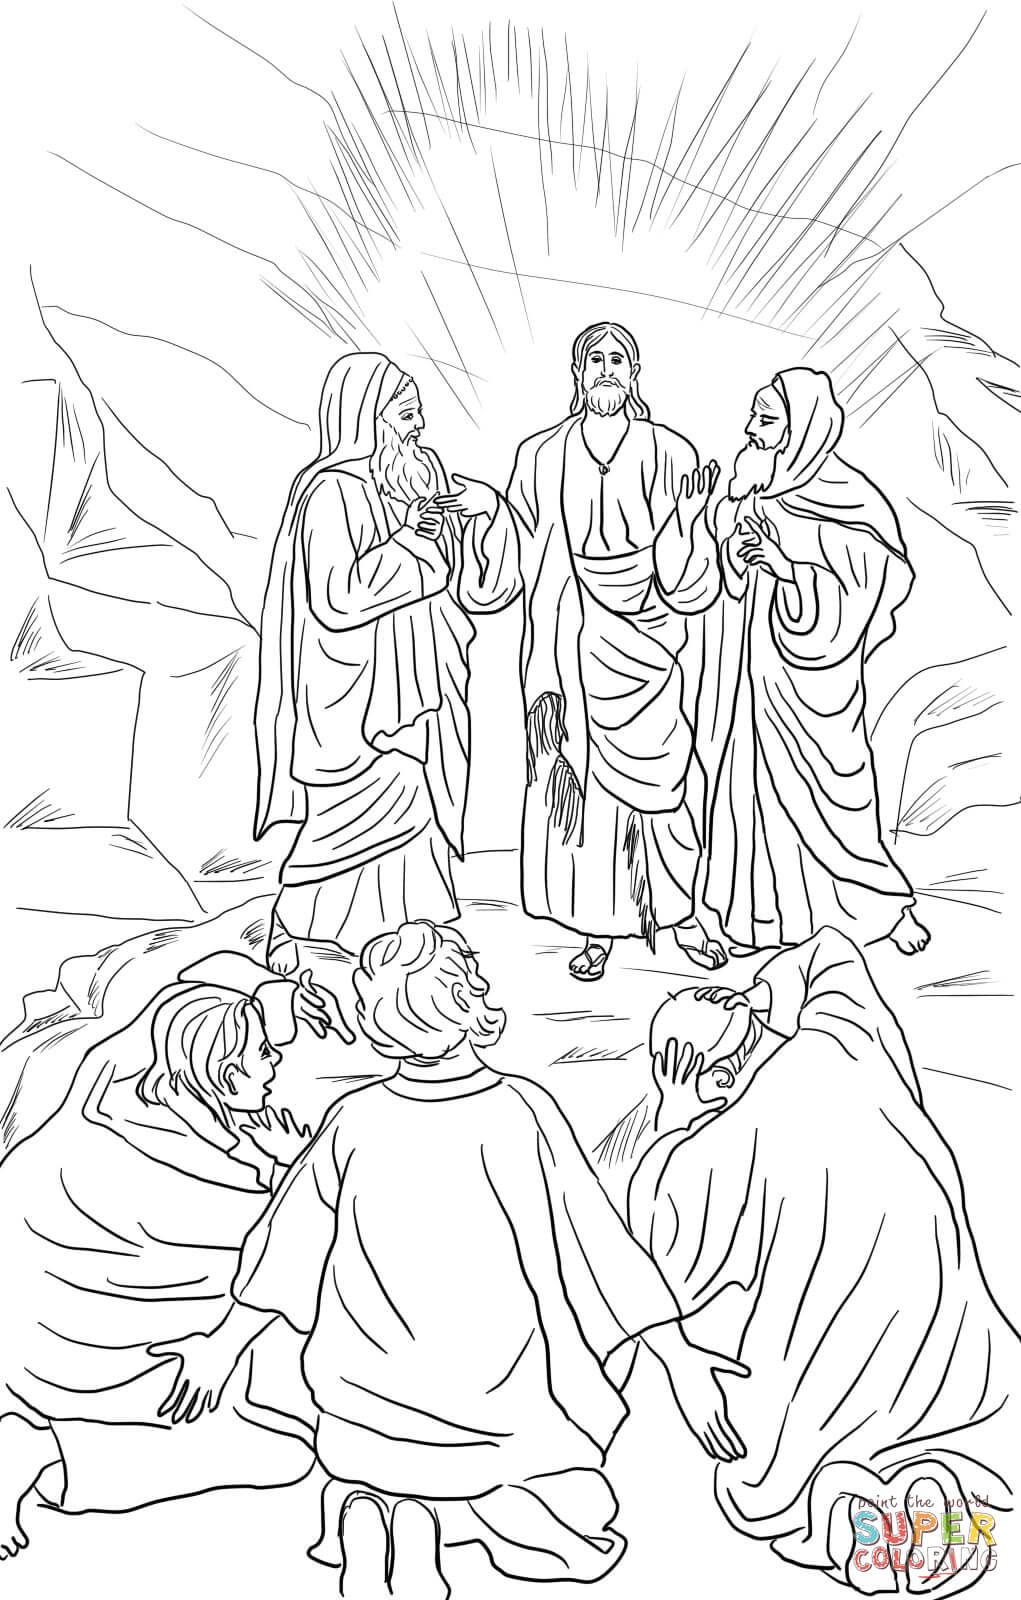 Matthew 3 1 John The Baptist Prepares The Way 3 In Those Days John